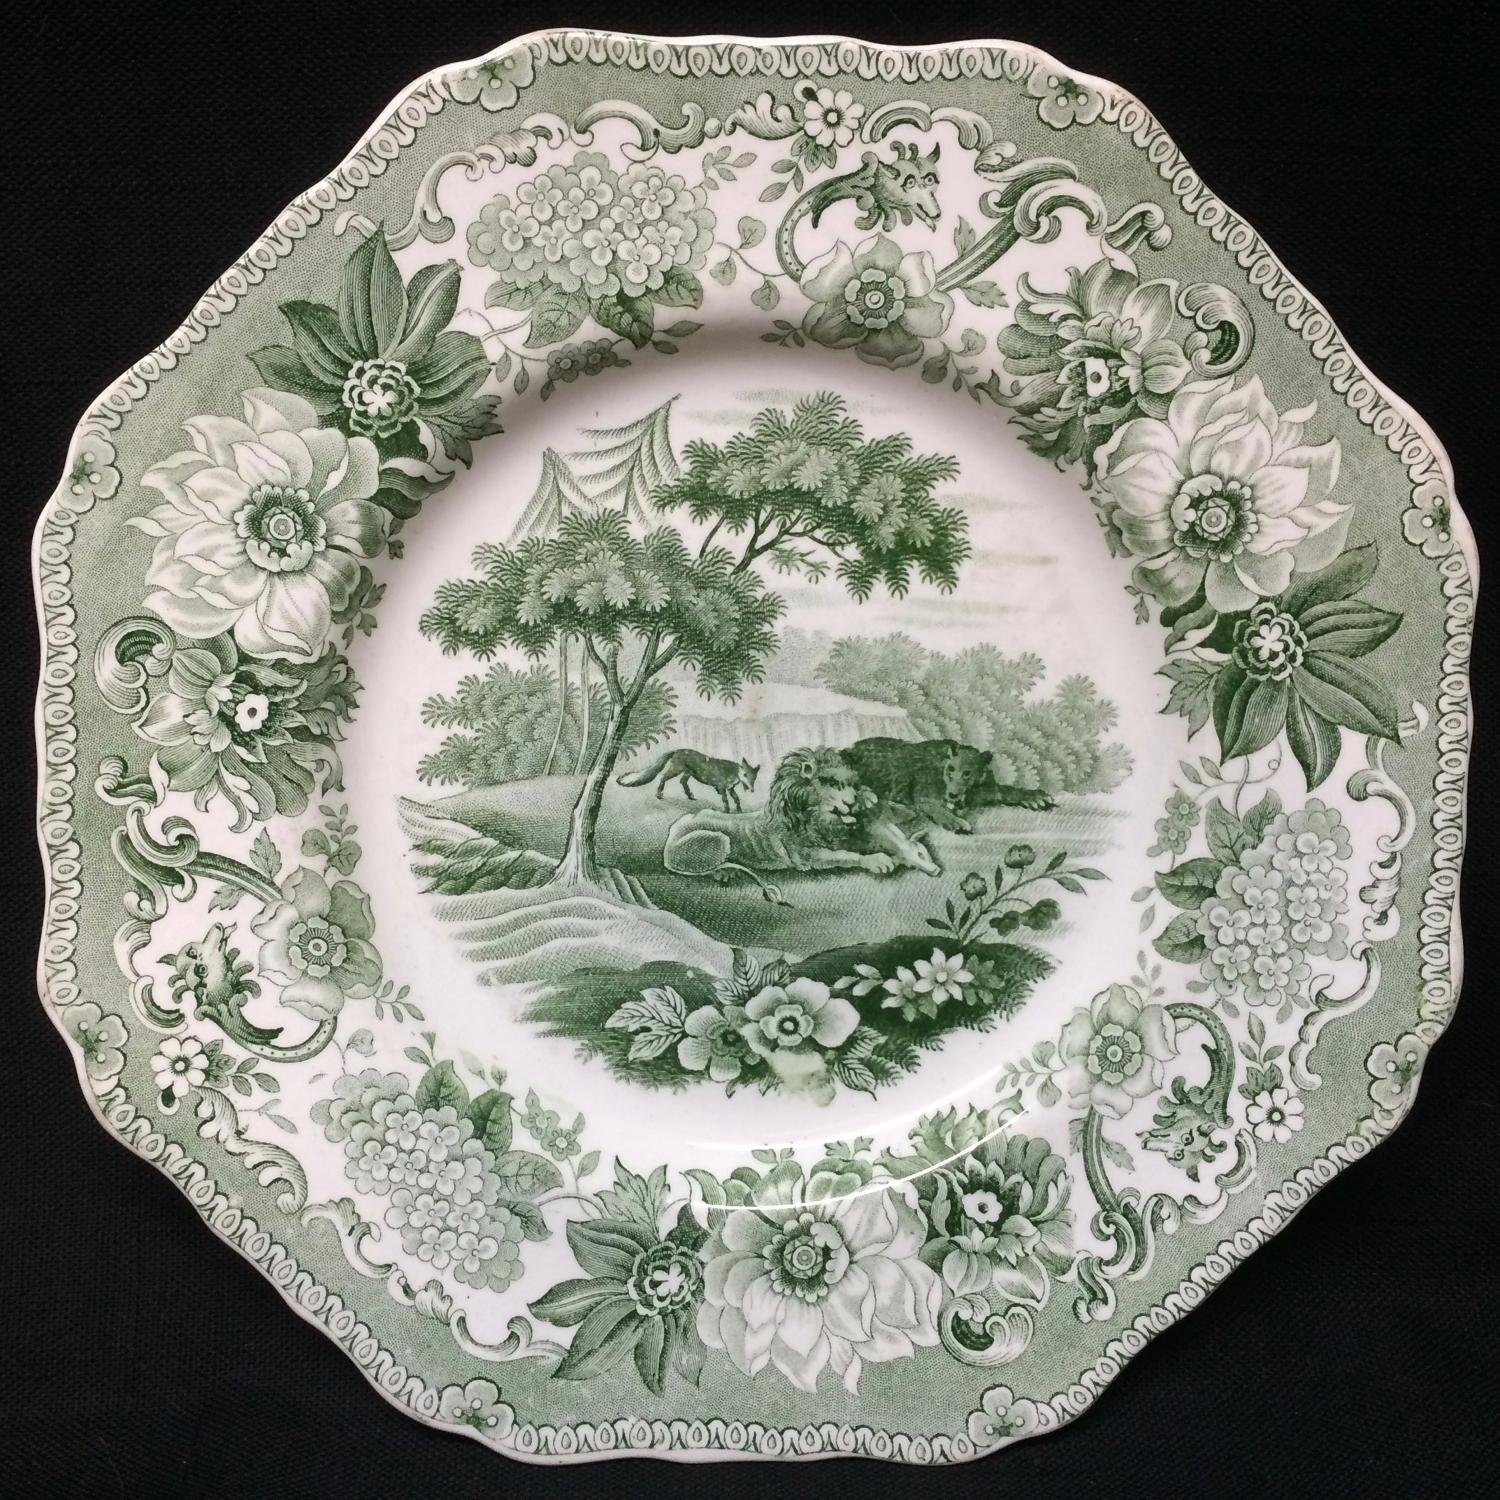 Staffordshire Spode Plate Lion & Fox & Bear ~ Aesop's Fables 1835